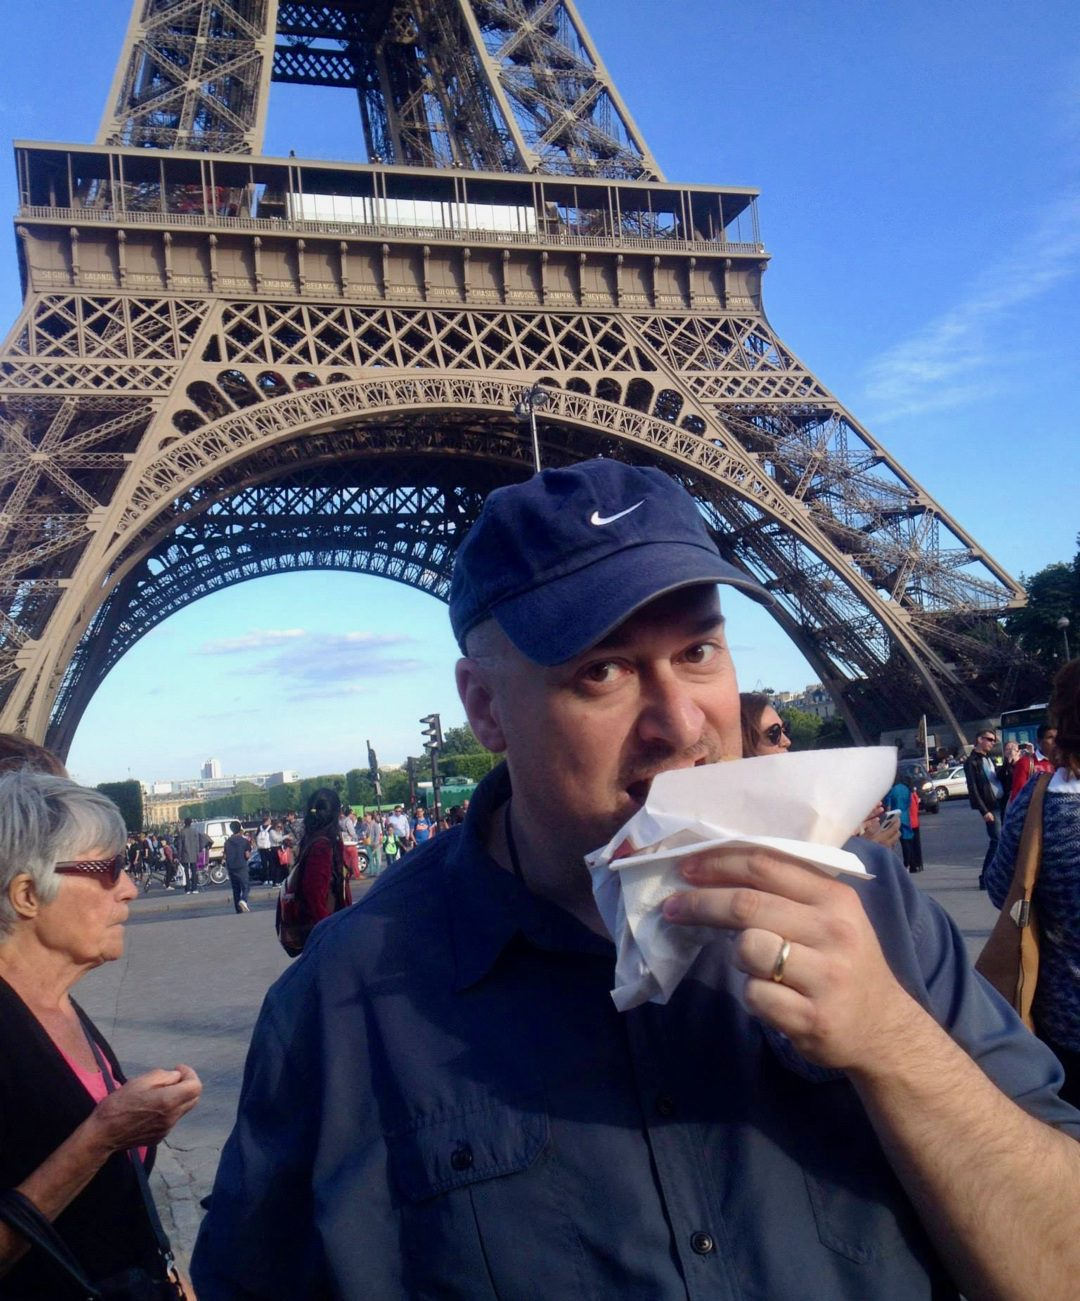 Eating a Nutella crepe at the Eiffel Tower in Paris.